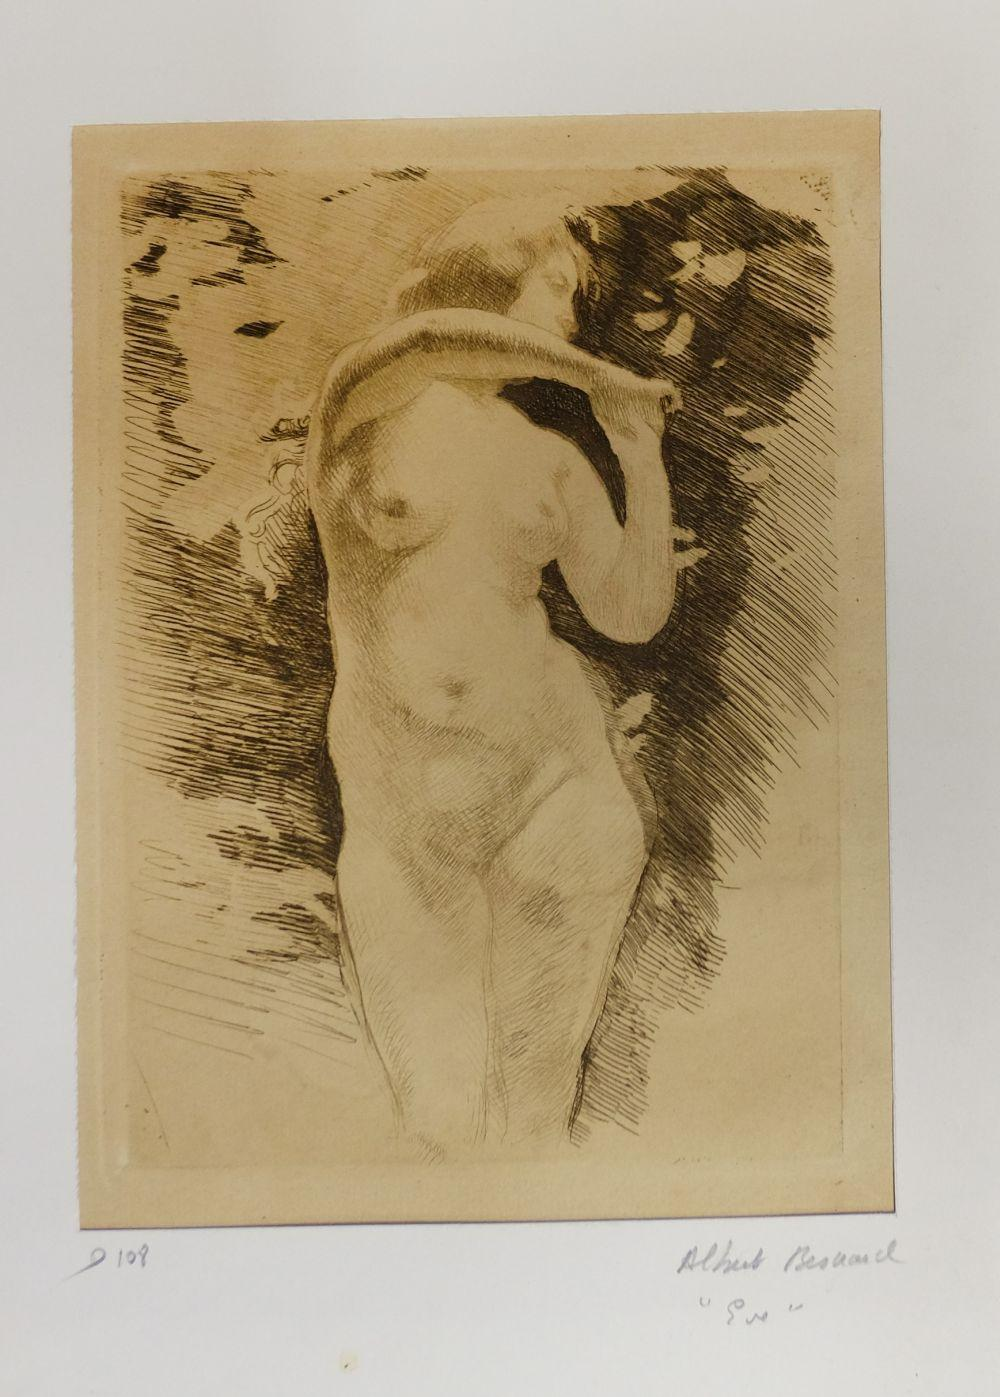 * Etchings. A mixed collection of approximately sixty-five etchings, mostly early 20th century,